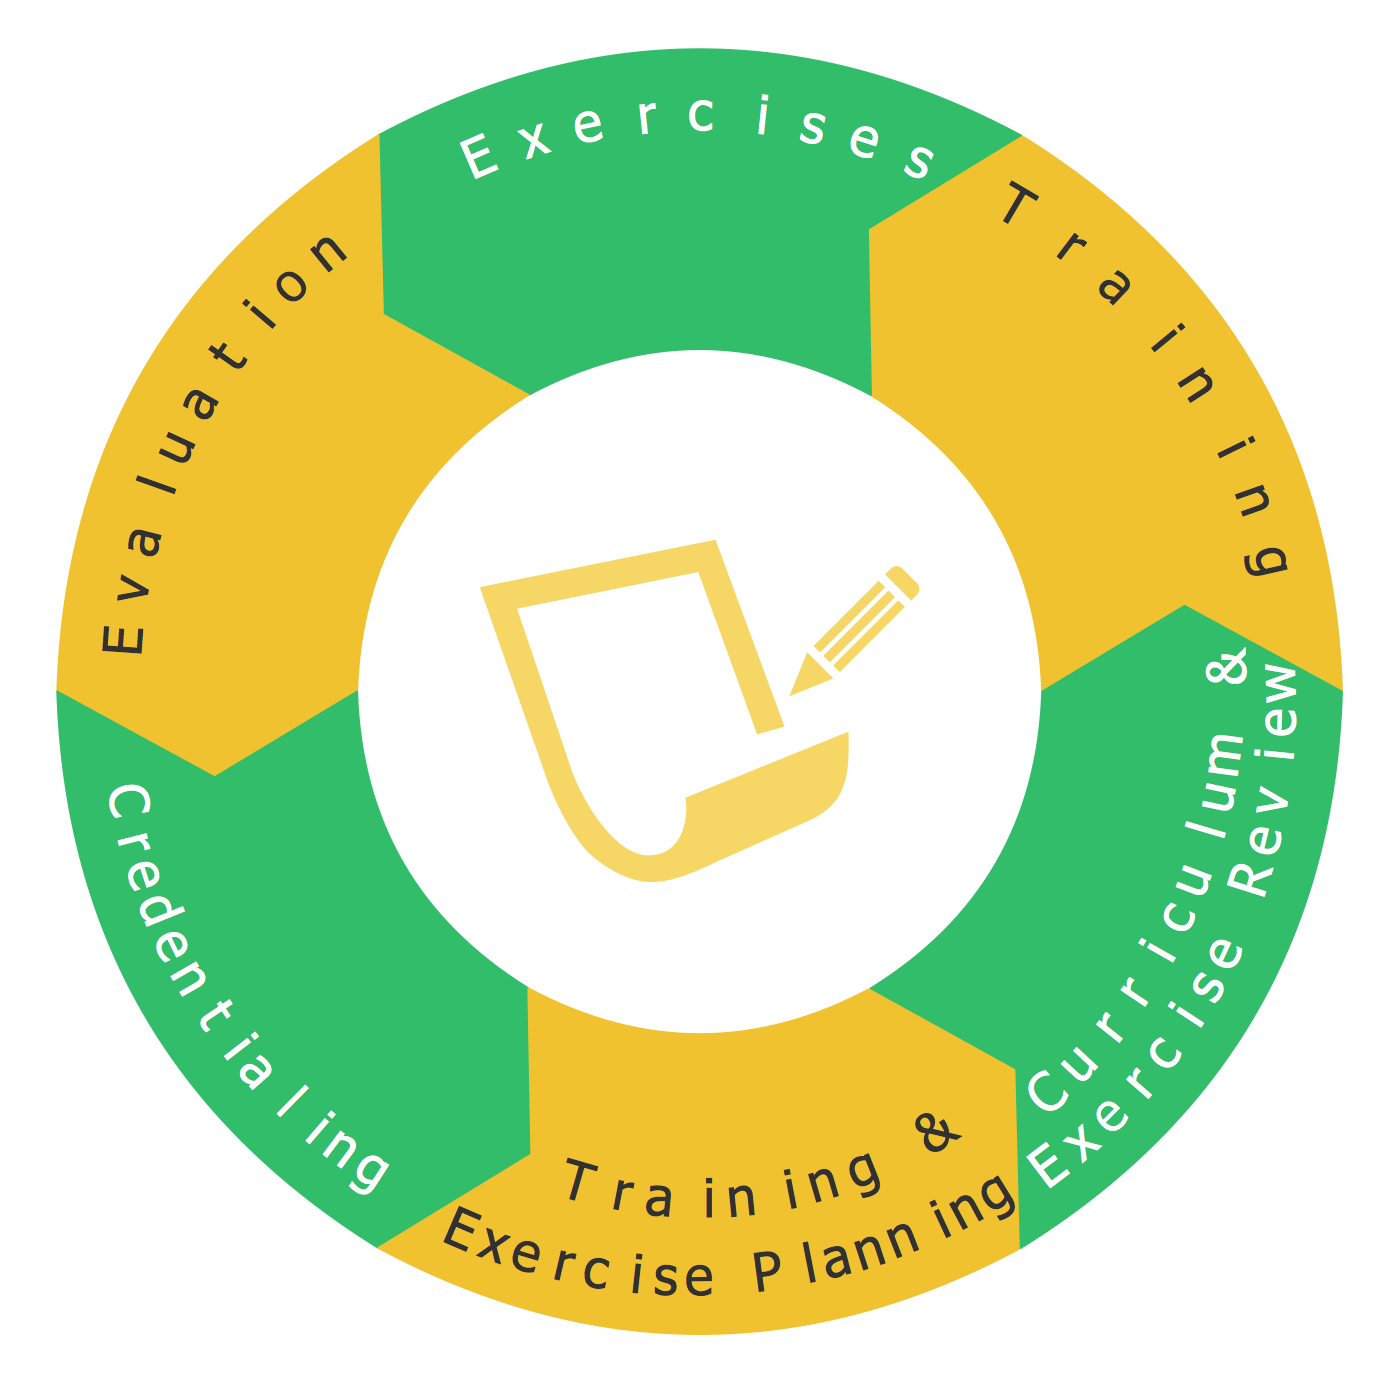 Circular Arrows Diagram — Training and Exercise Process Wheel